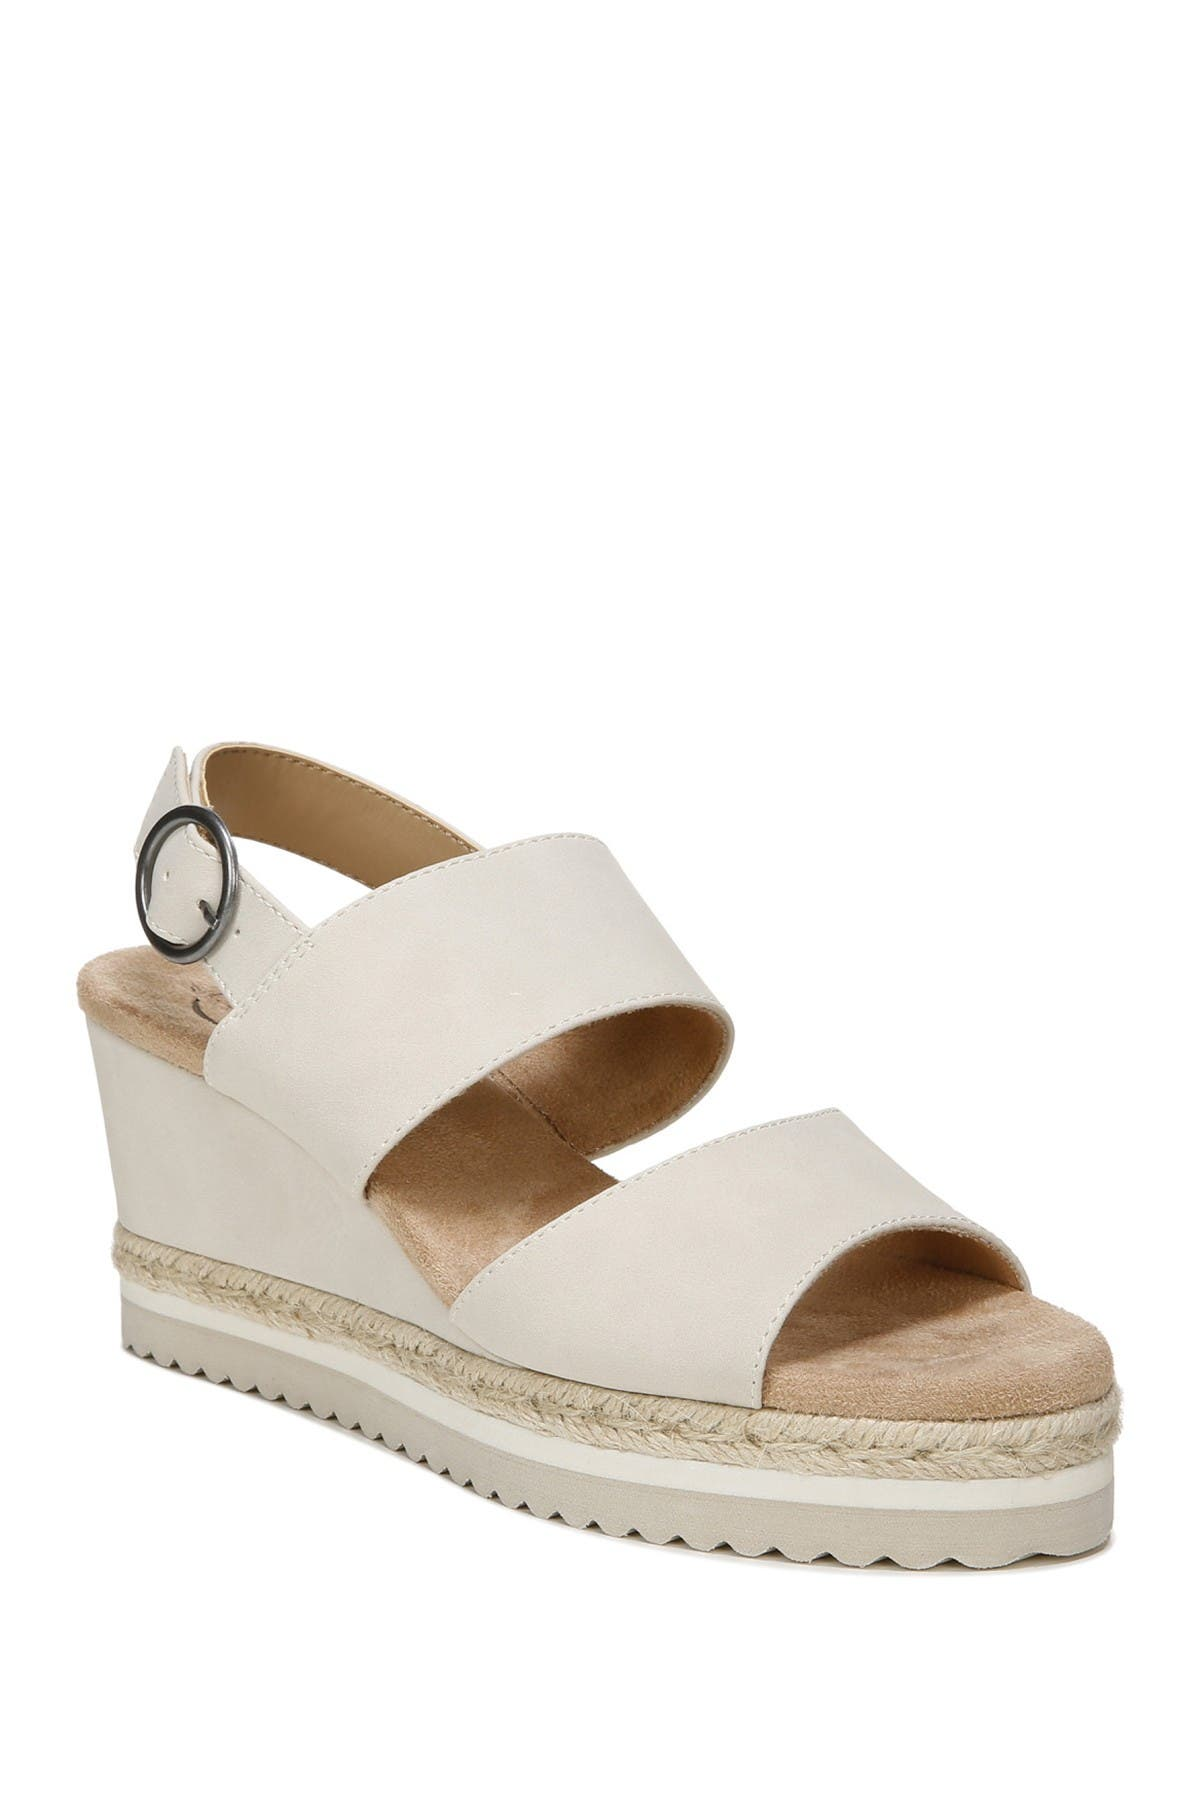 Lifestride BRIELLE ESPADRILLE WEDGE SANDAL